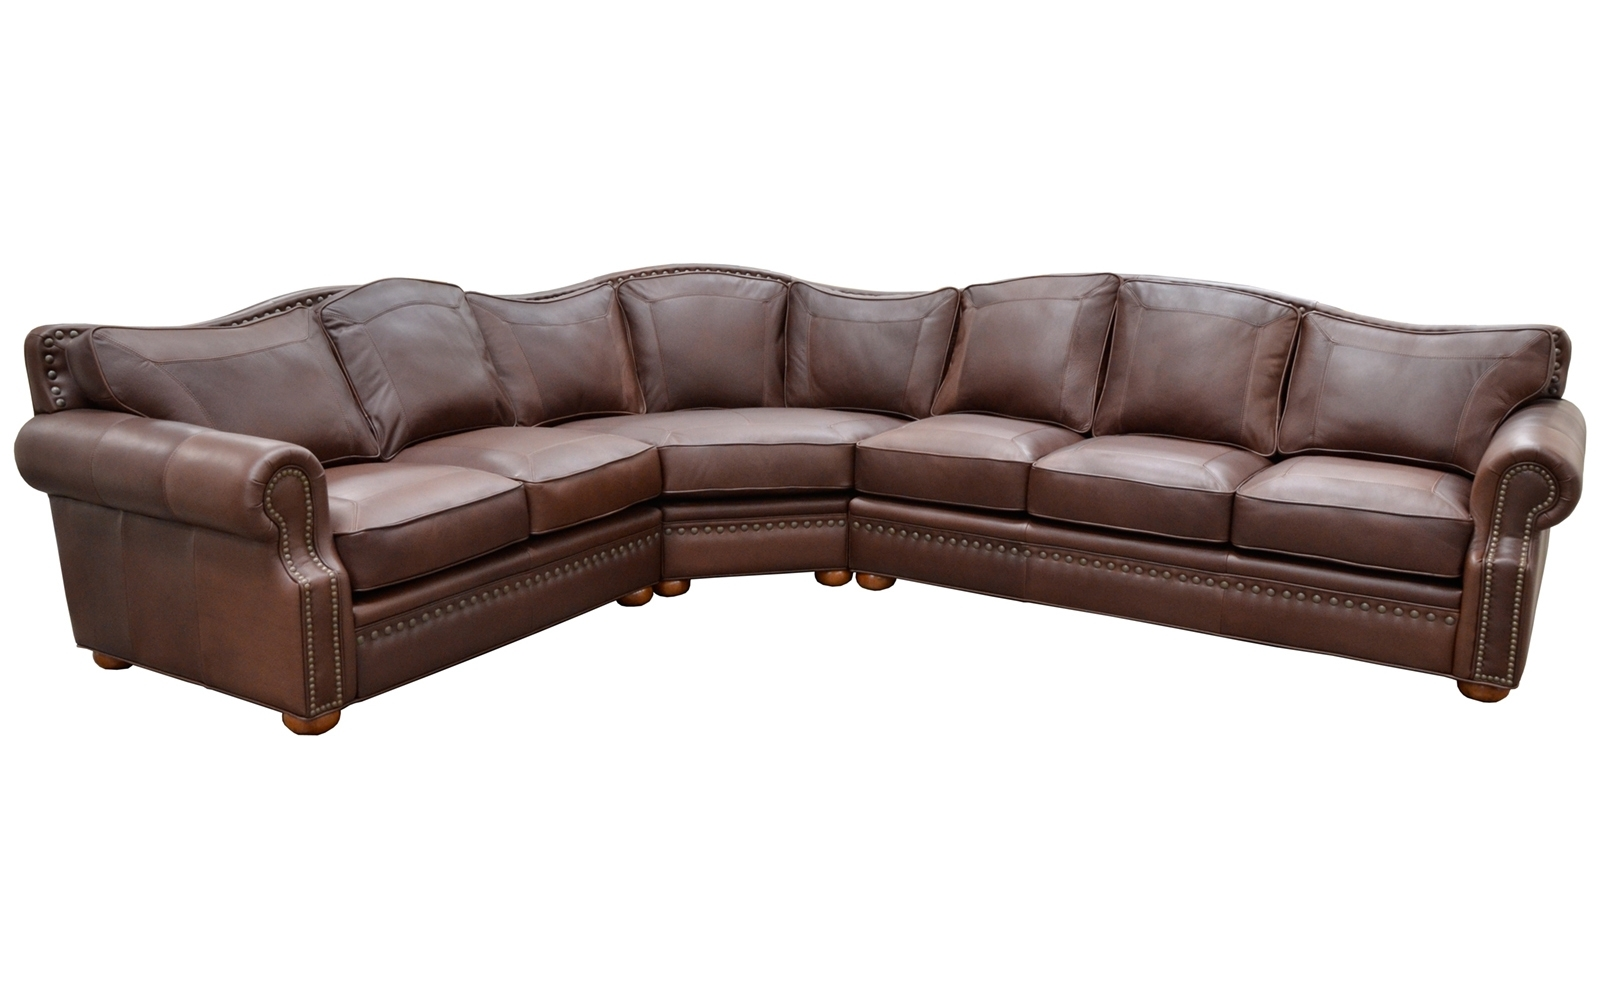 Tucson Sectional Sofas With Regard To Preferred Tucson Sectional – Arizona Leather Interiors (View 2 of 20)